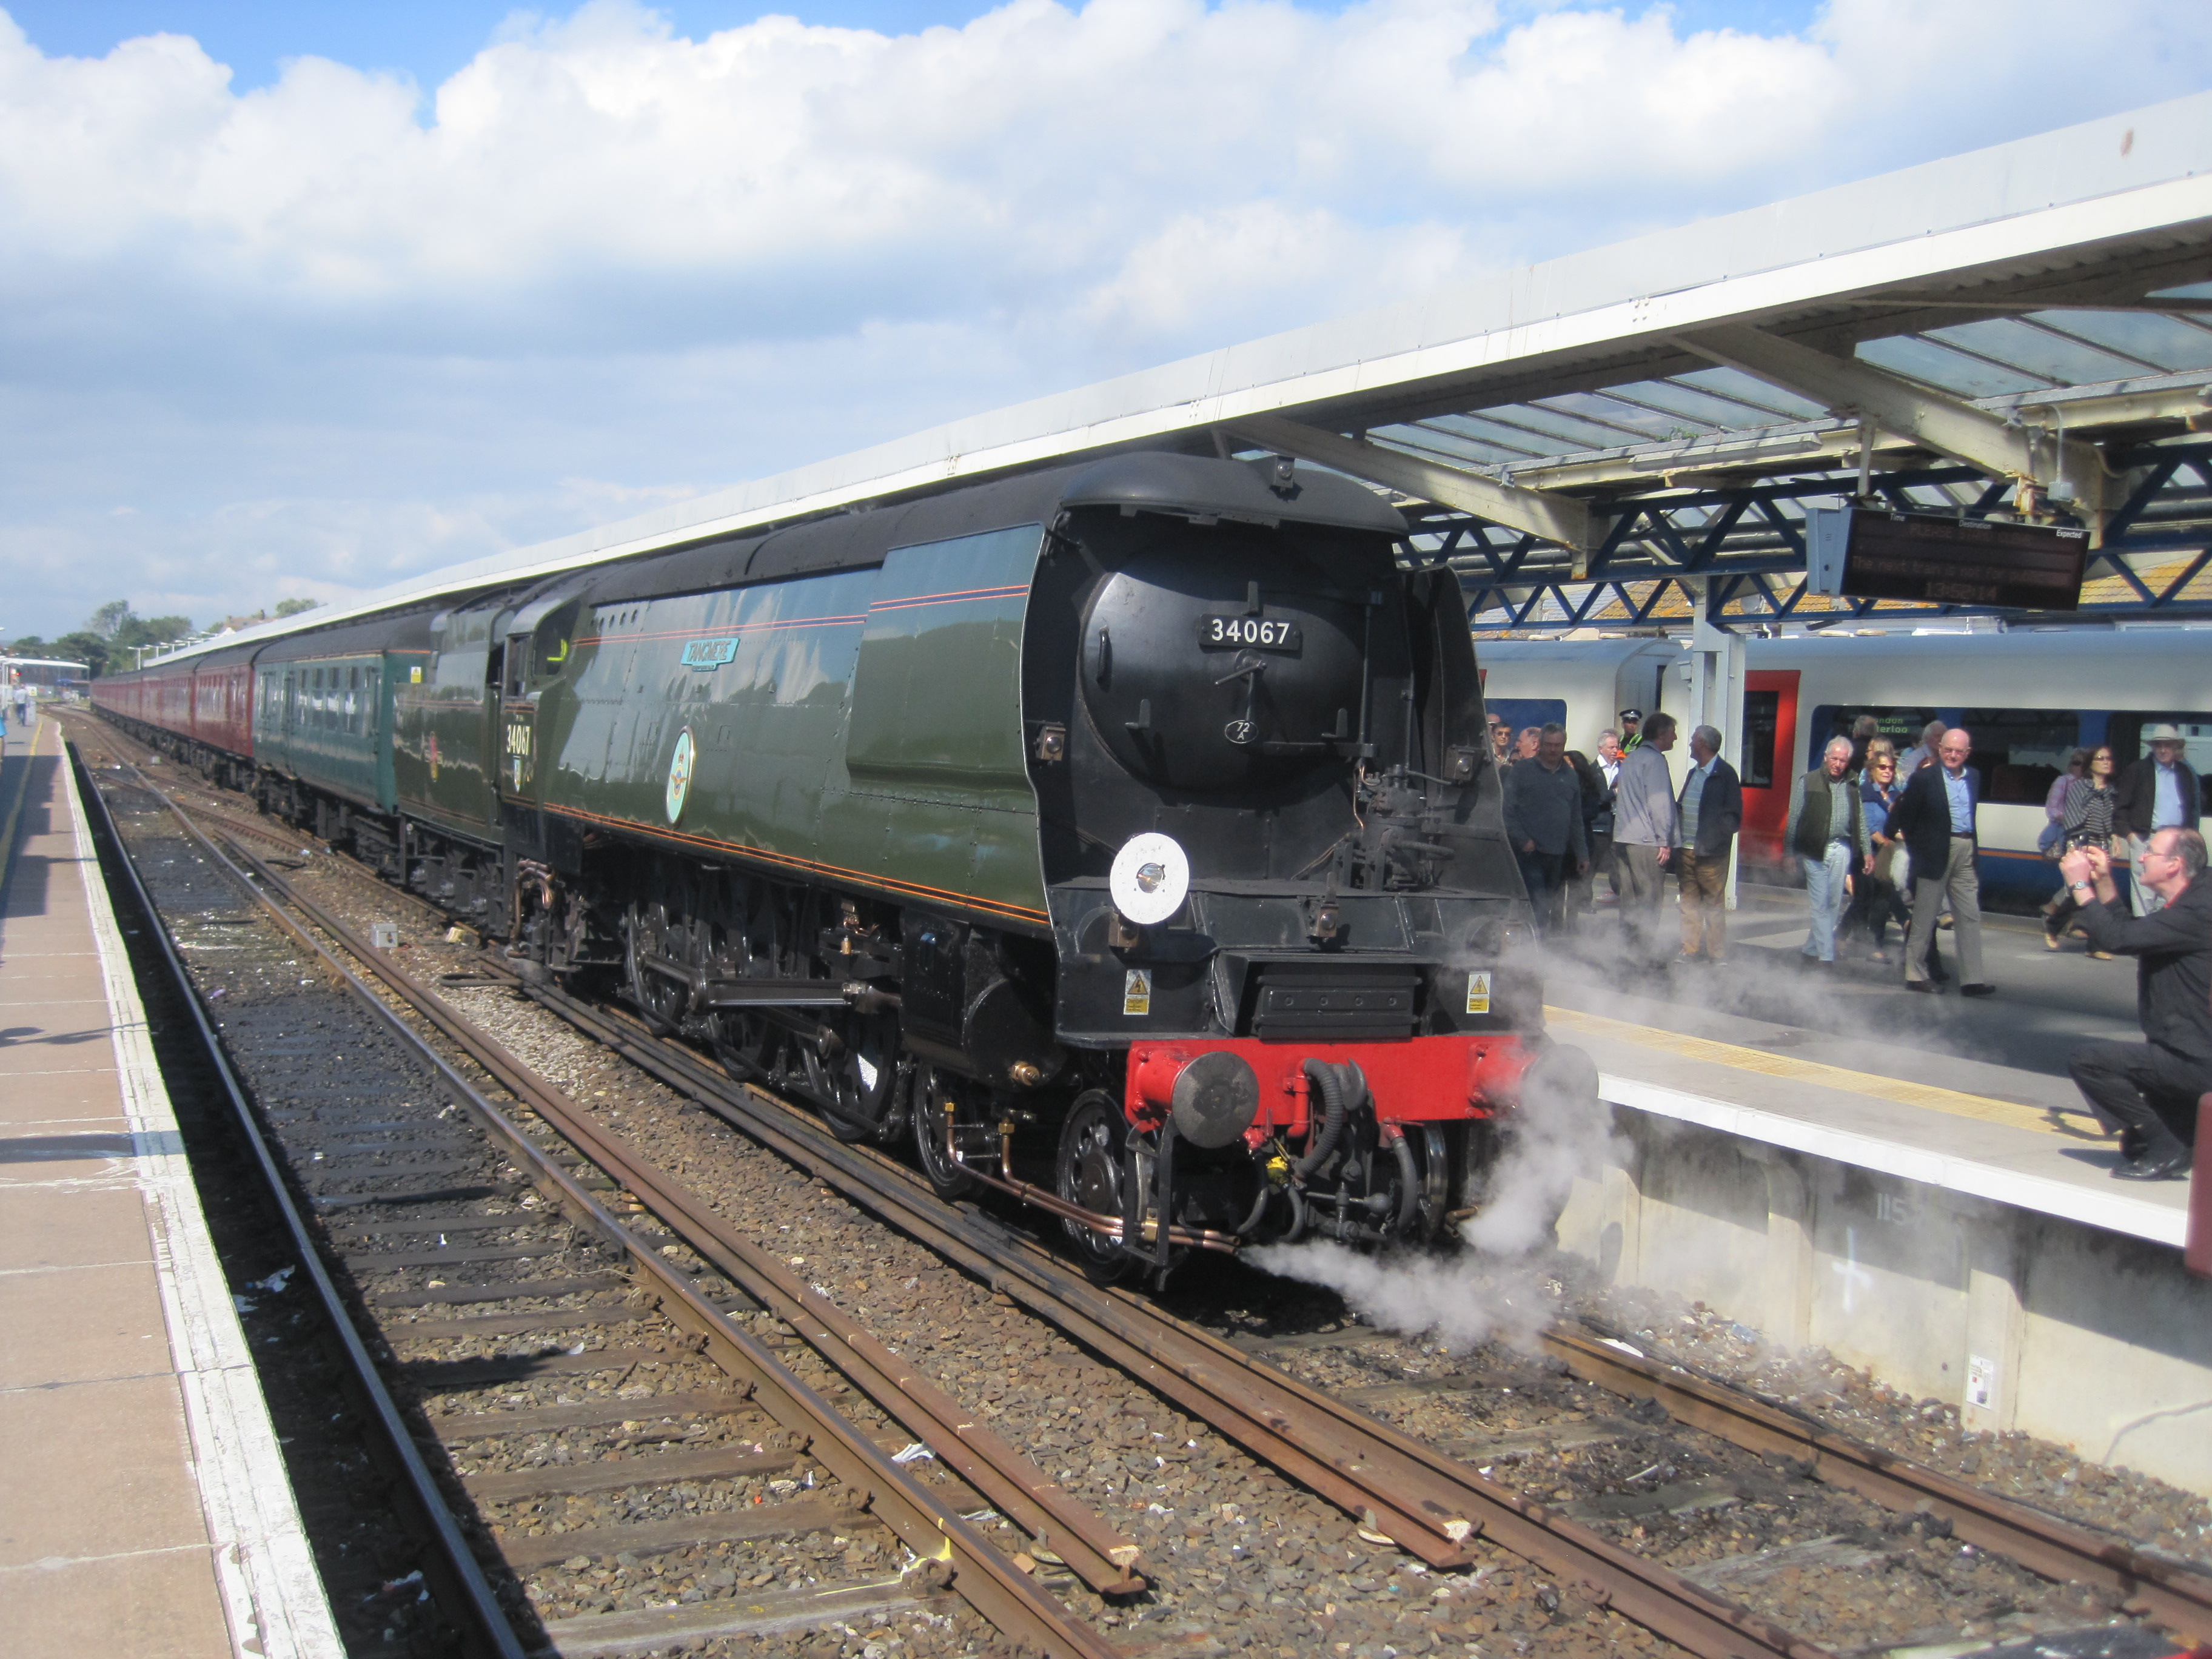 34067 Tangmere at Weymouth 9 September 2015